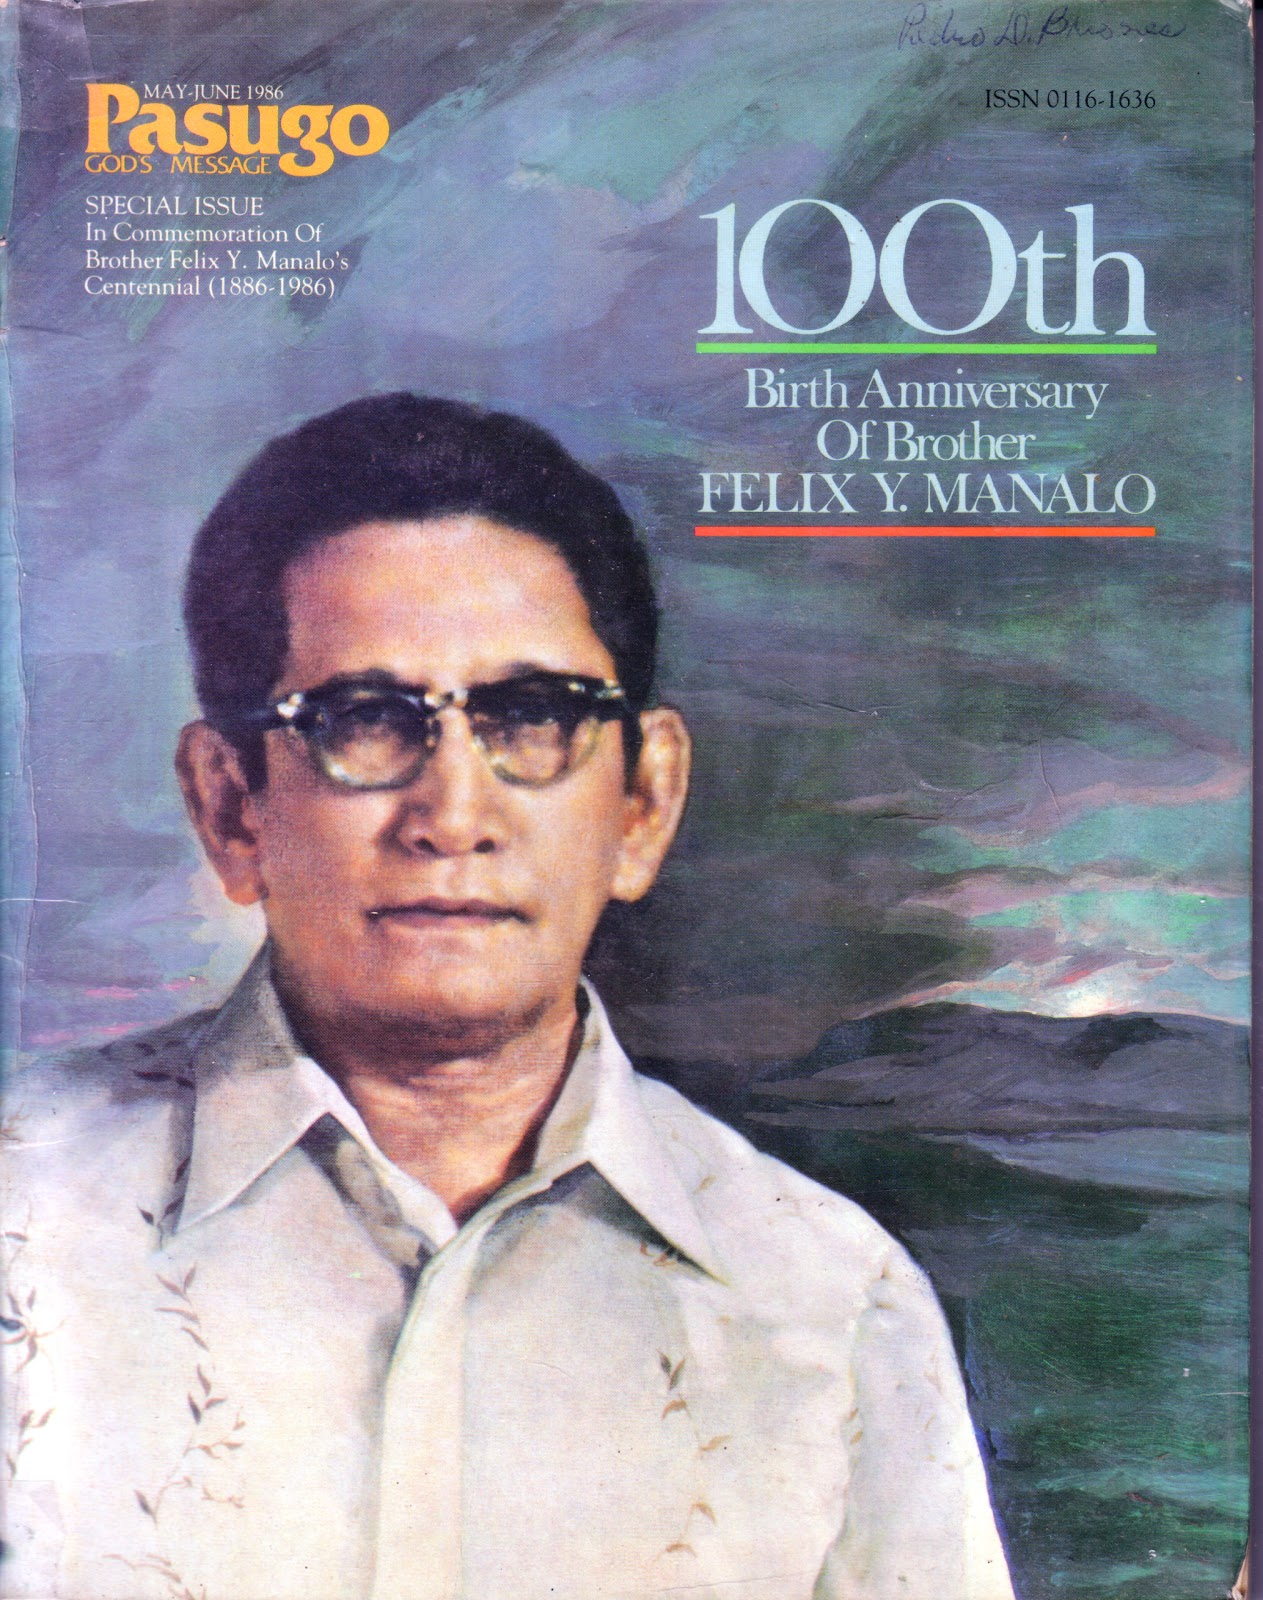 THE PRISTINE TRUTH: FELIX Y  MANALO: WHY HE CHANGED HIS NAME